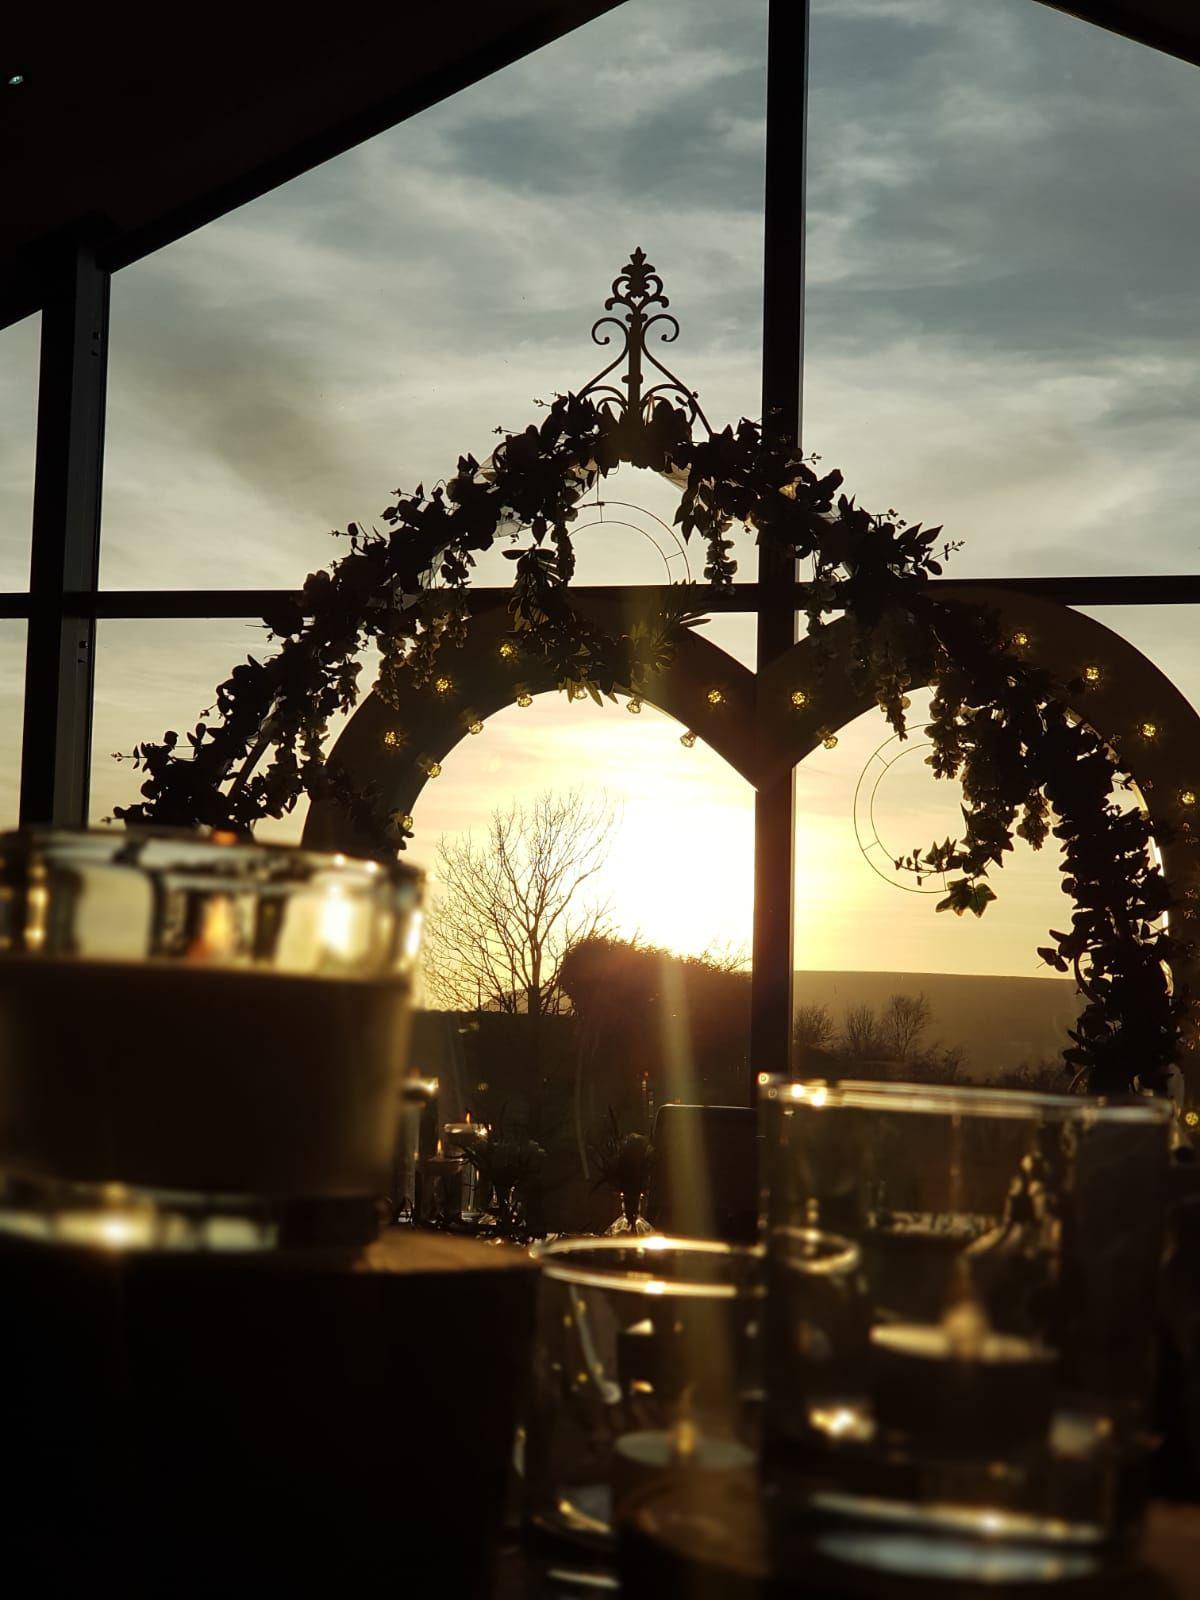 Love Heart Arch and Floral Arch in Front of Windows at Sunset